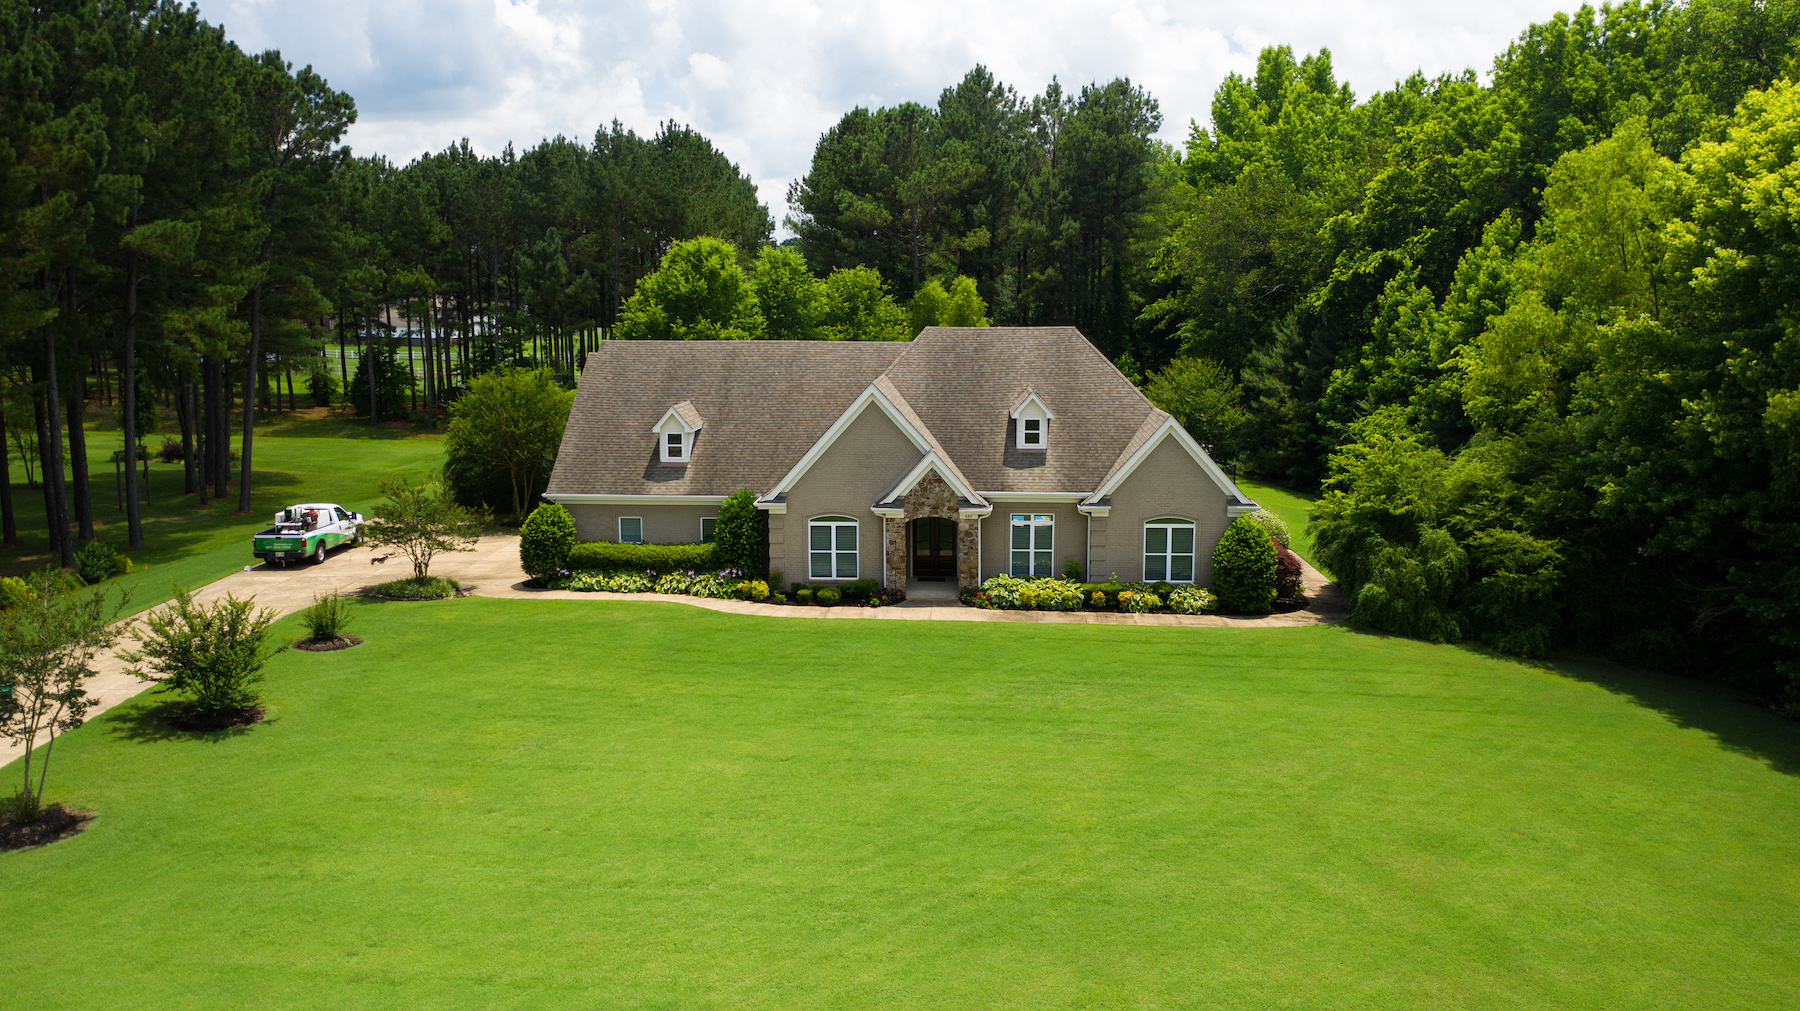 Lush green lawn in Tennessee heat